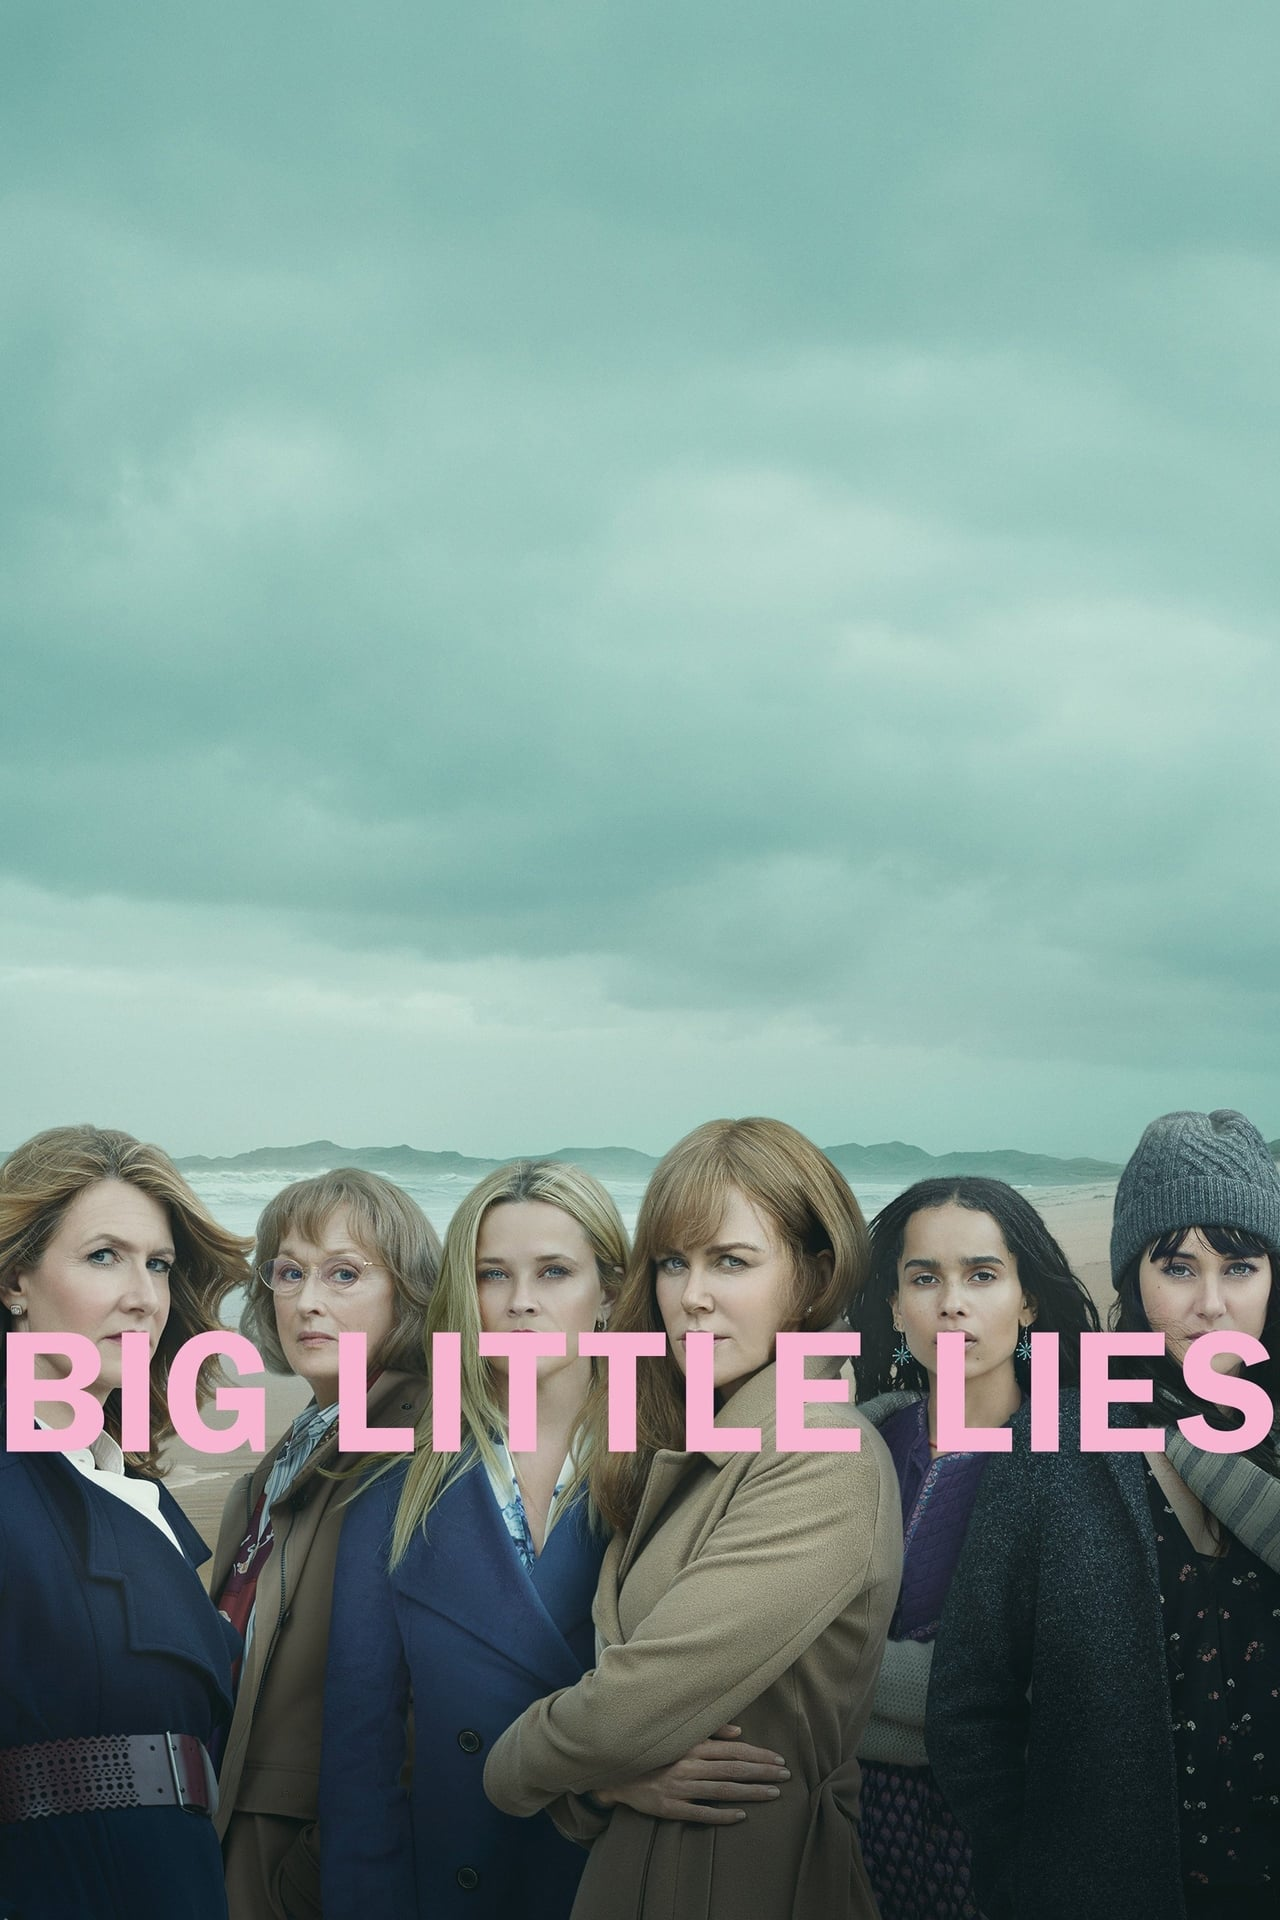 Big Little Lies Season 2 image